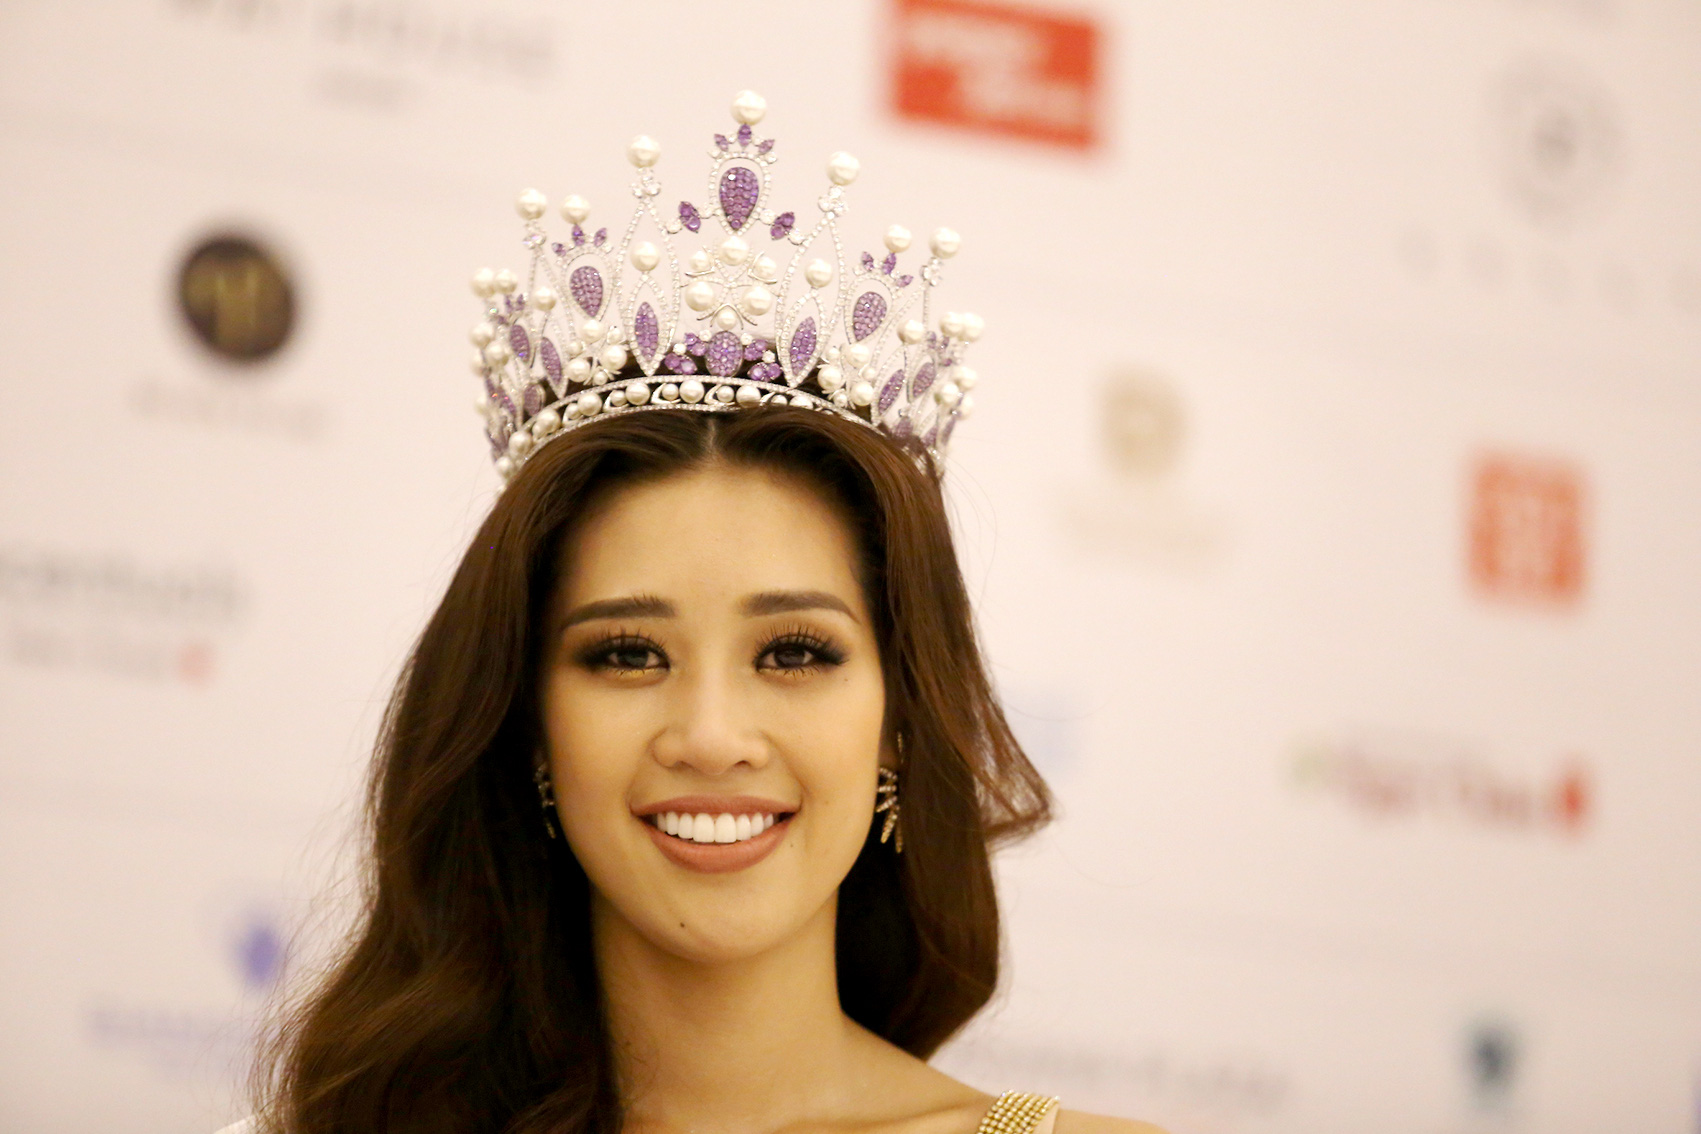 Nguyen Tran Khanh Van is crowned Miss Universe Vietnam 2019 in Nha Trang City on December 7, 2019.